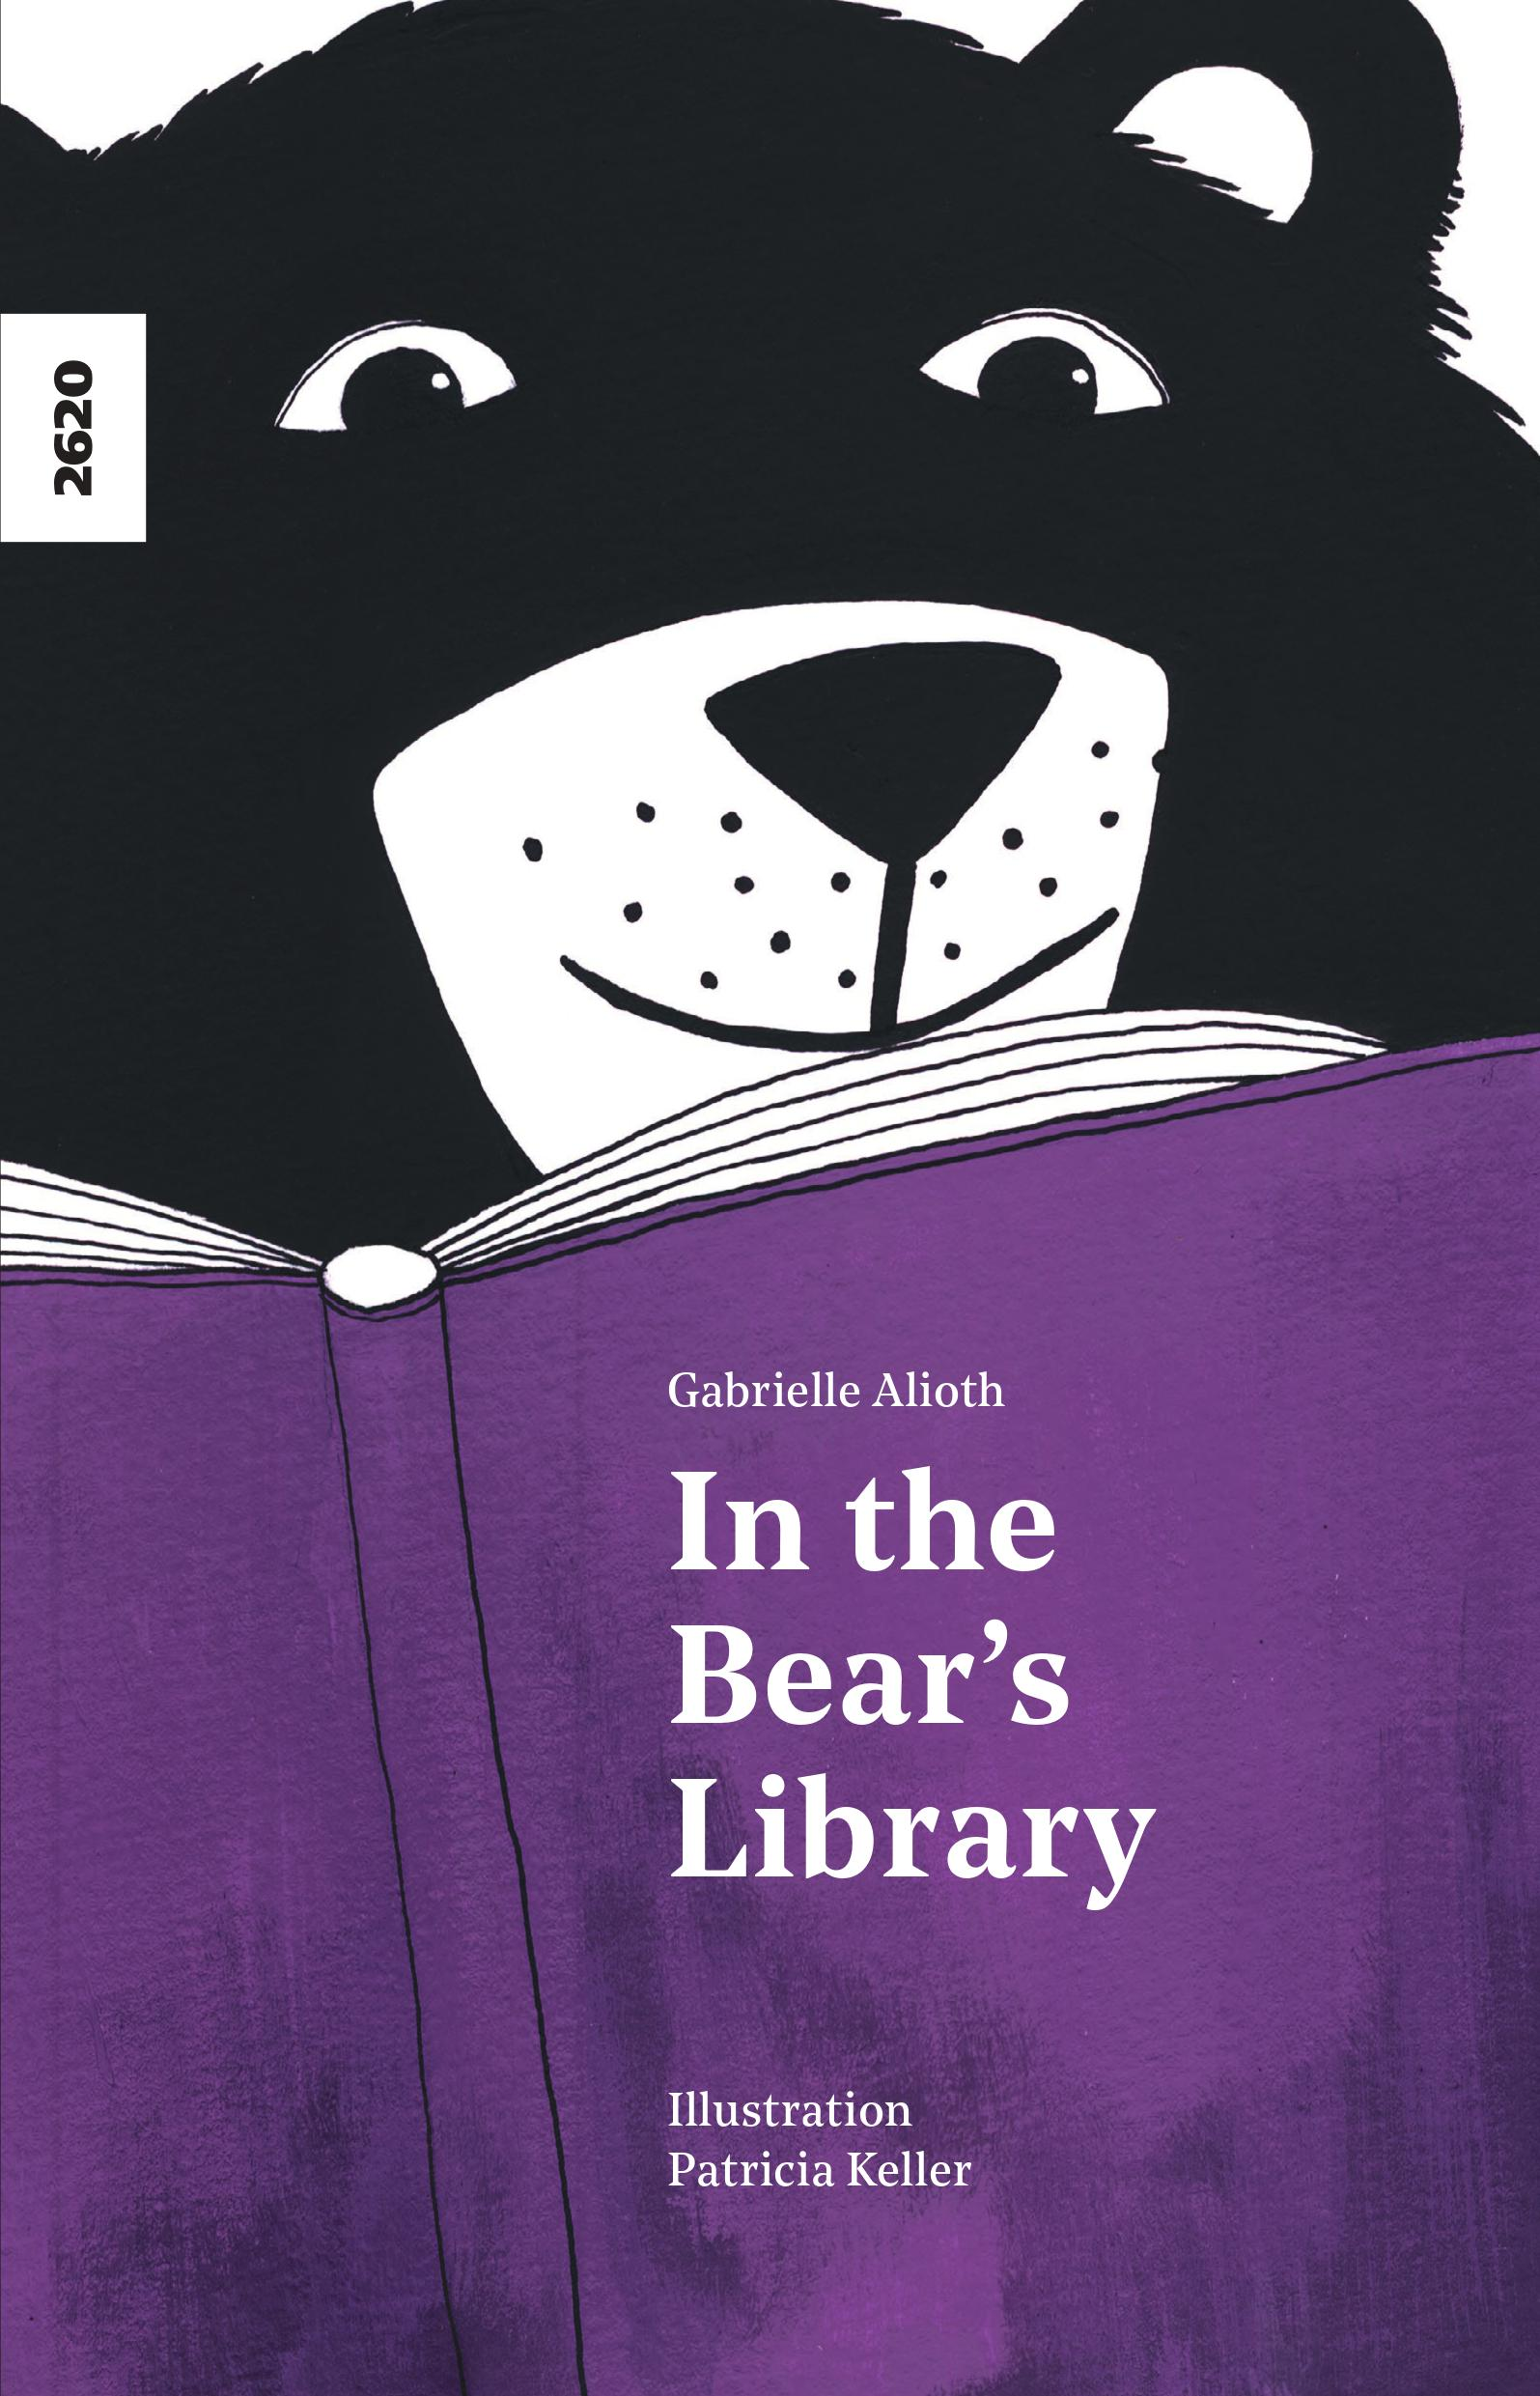 Preview image for LOM object In the Bear's Library